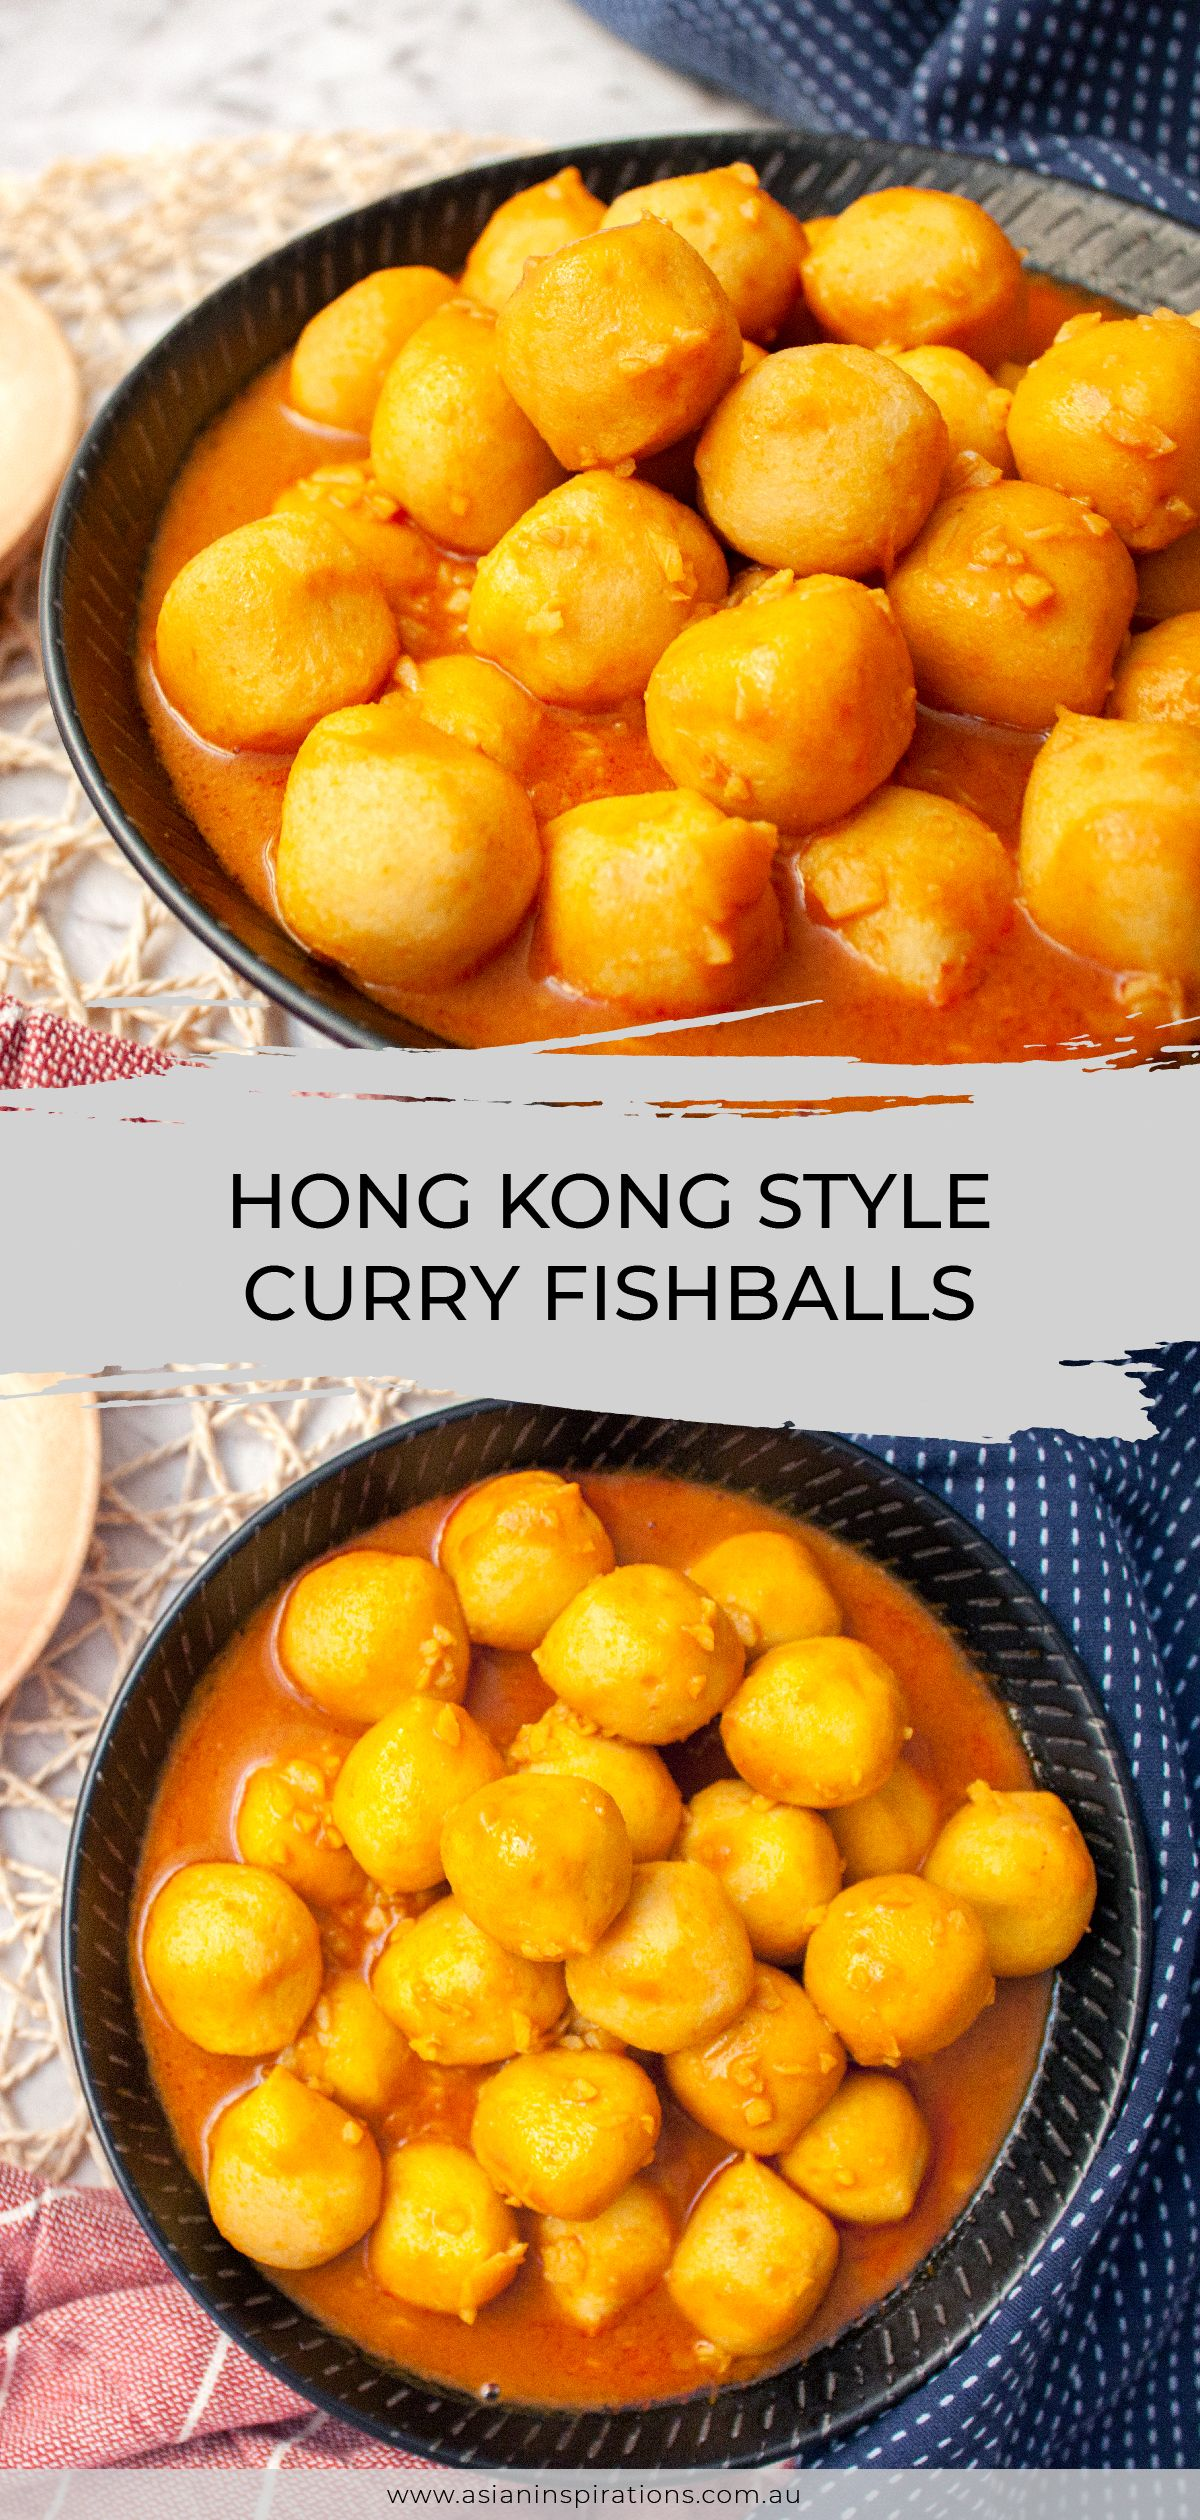 Hong Kong Style Curry Fishballs Asian Inspirations Recipe Chinese Street Food Food Curry Fish Balls Recipe